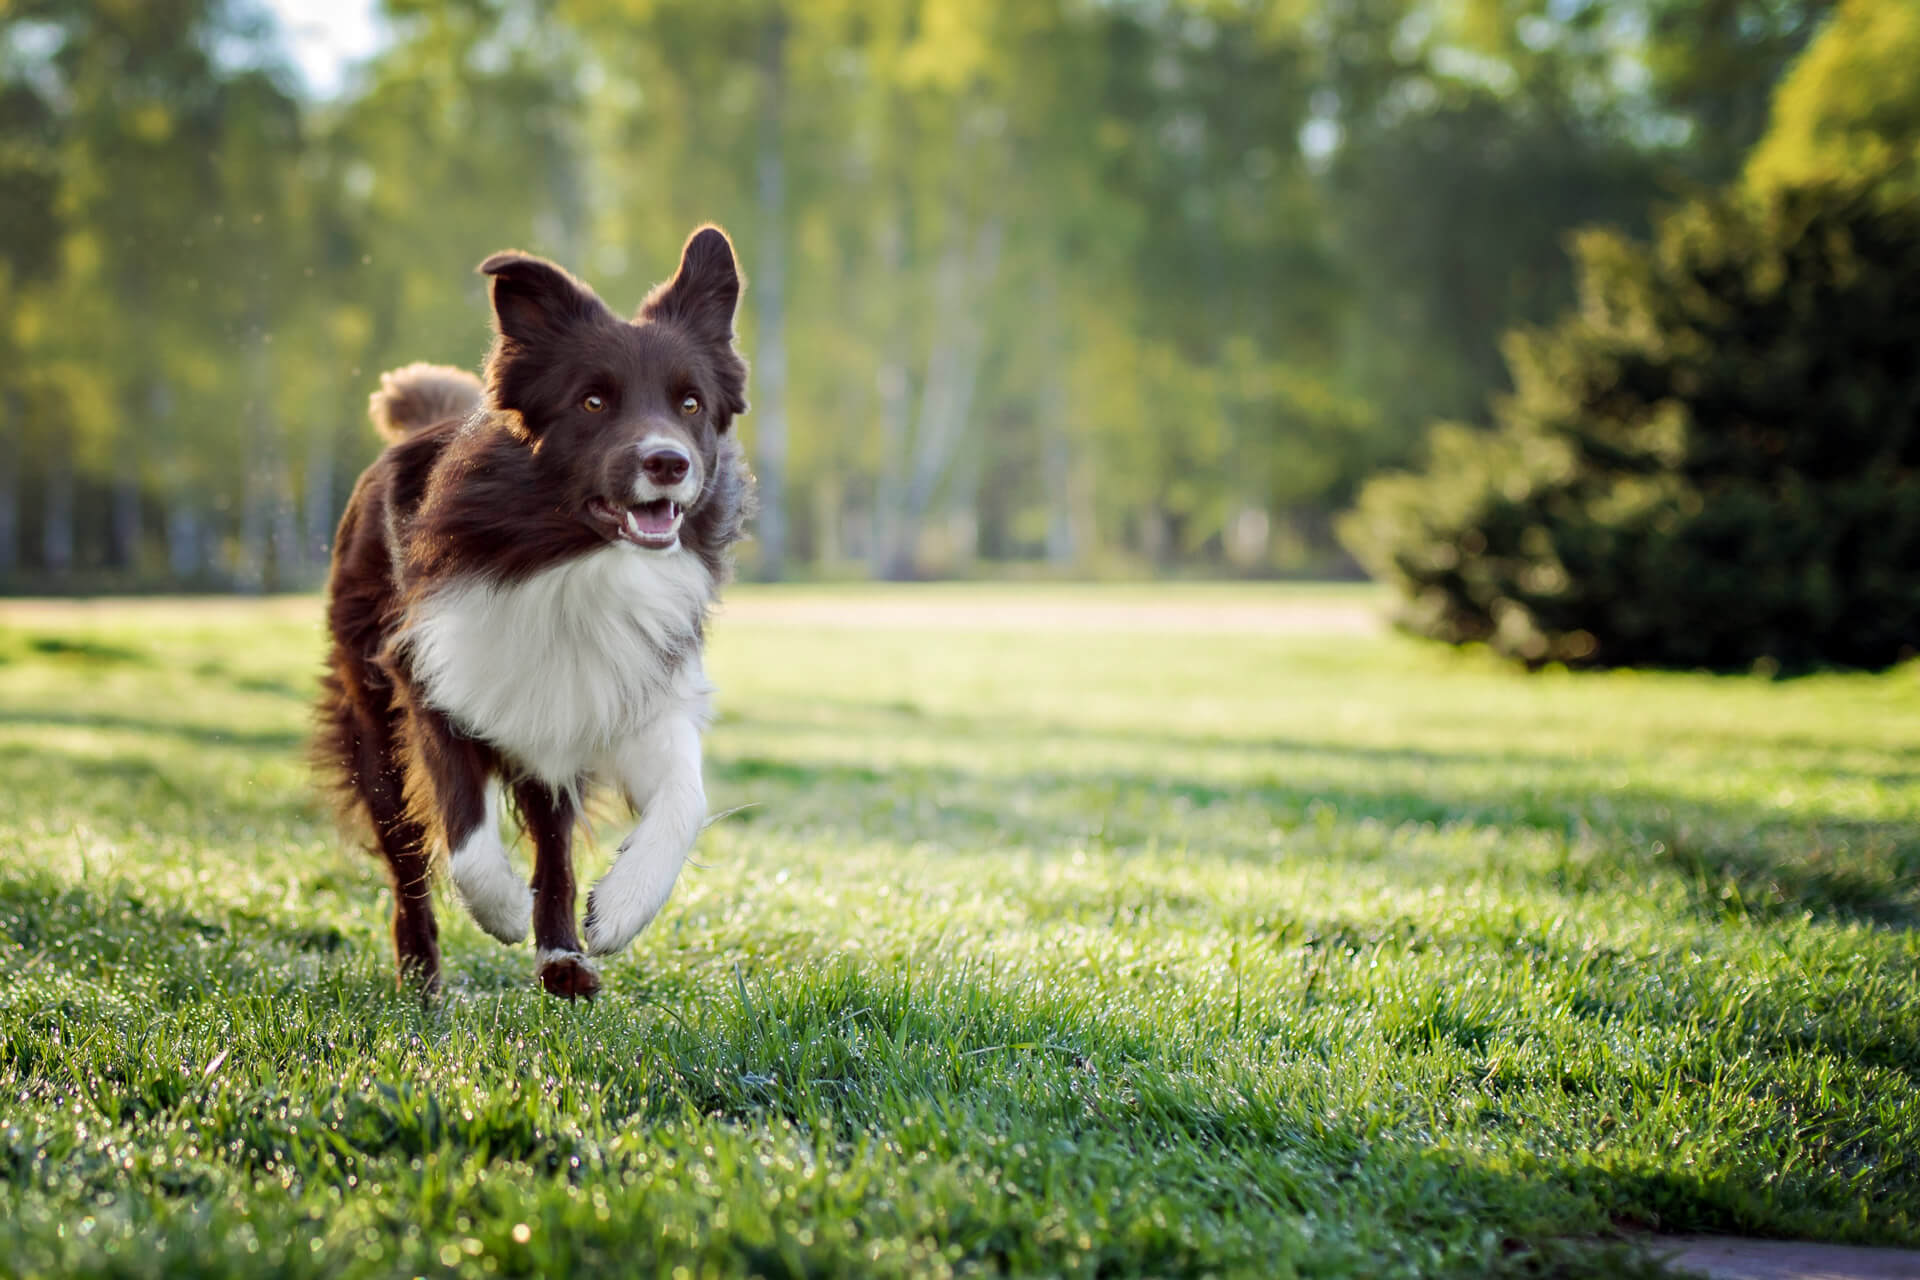 Best running dogs: Which breeds are the best dogs to run with?